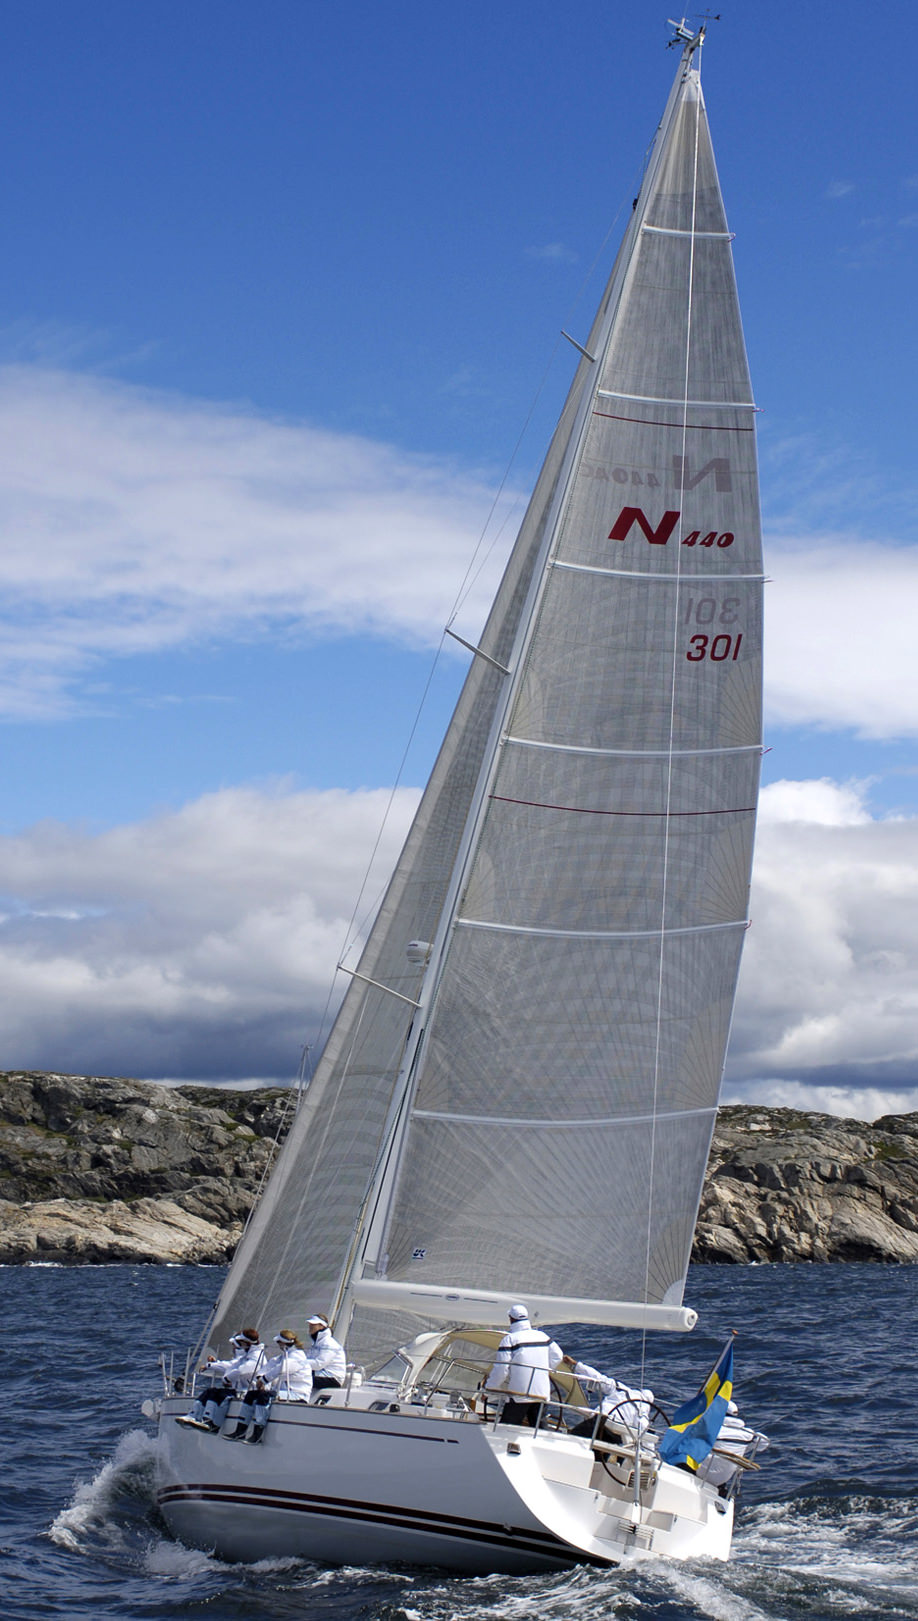 Titanium Double Taffeta fully battened mainsail.